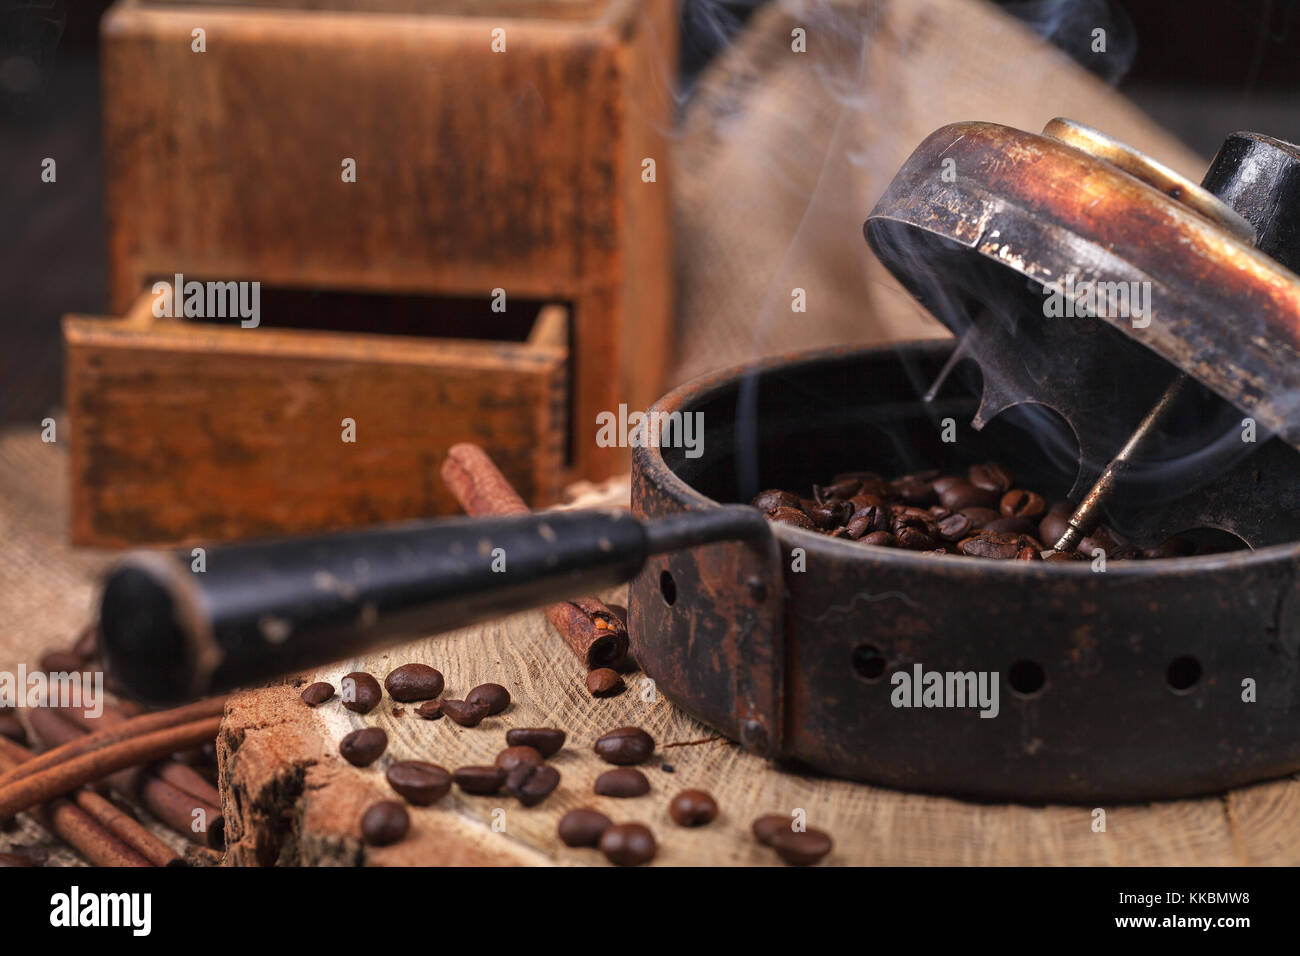 The device for roasting coffee beans, an old hand grinder. Smoky roast coffee on a wooden stand. Studio lighting. Stock Photo